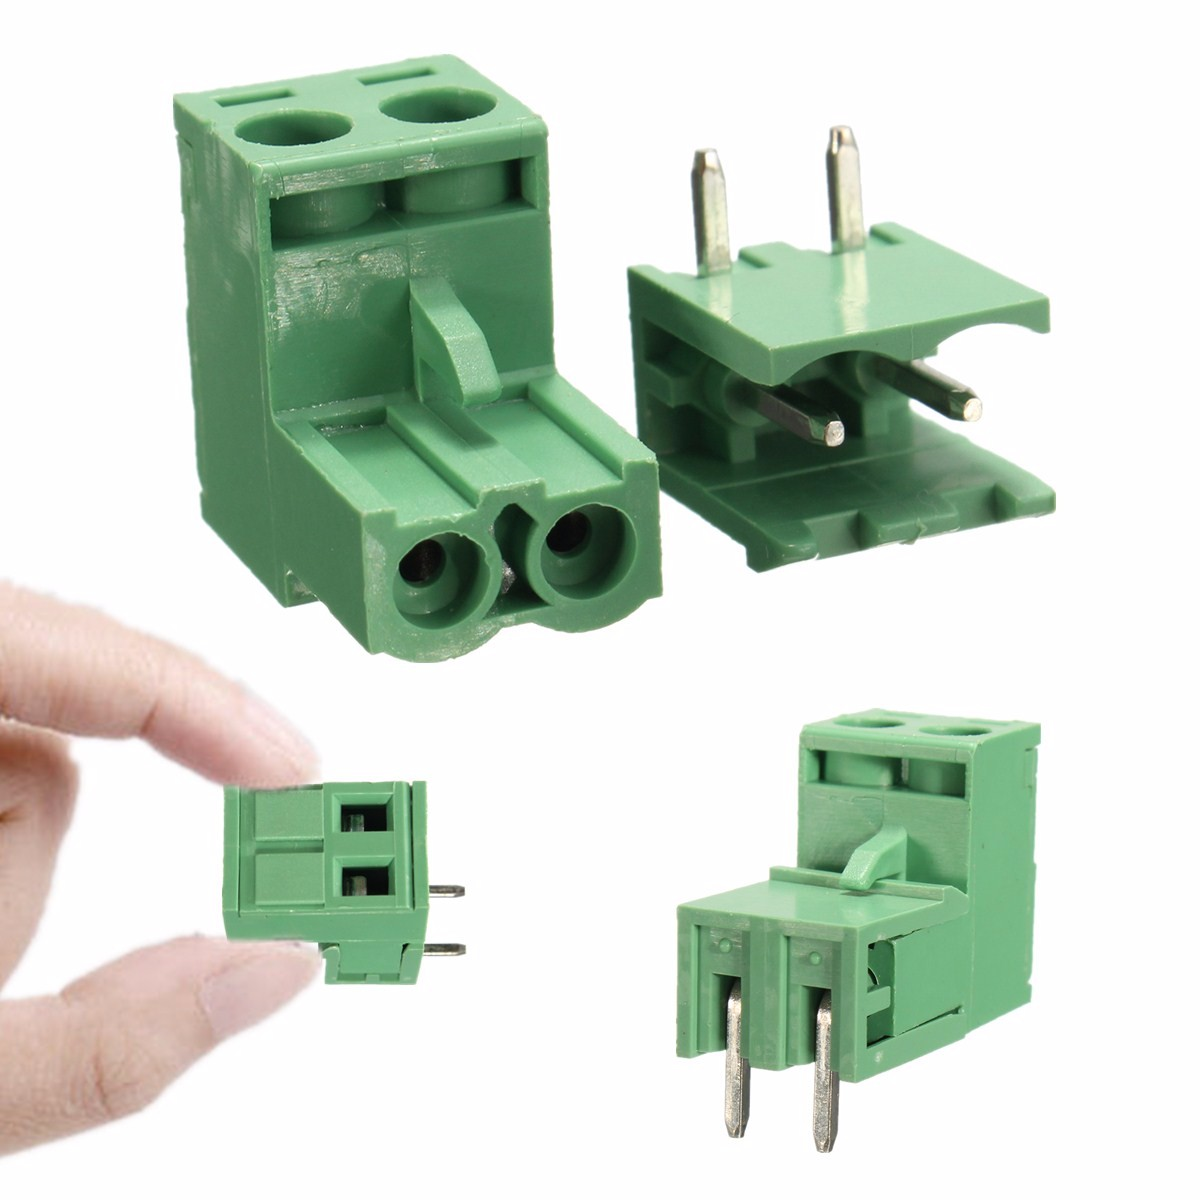 LEORY 5.08mm Pitch 2Pin Plug In Screw PCB Dupont Cable Terminal Block Connector Right Angle